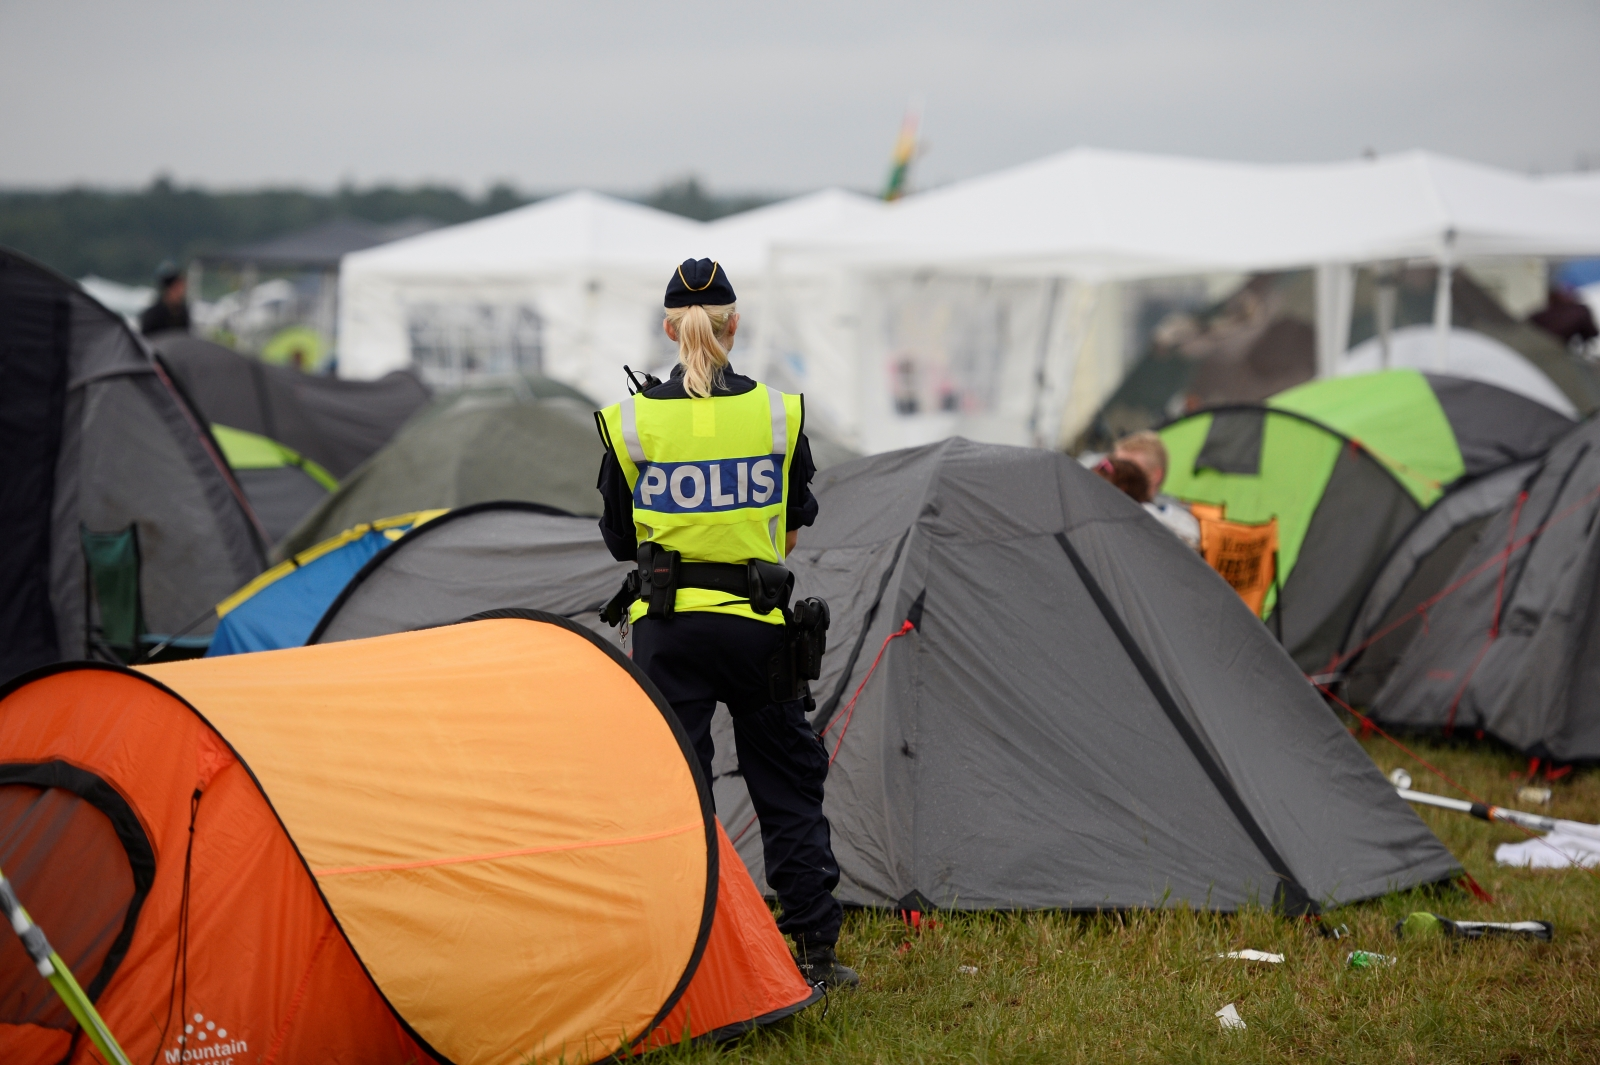 'It's a huge problem' Music festival is cancelled amid rape claims